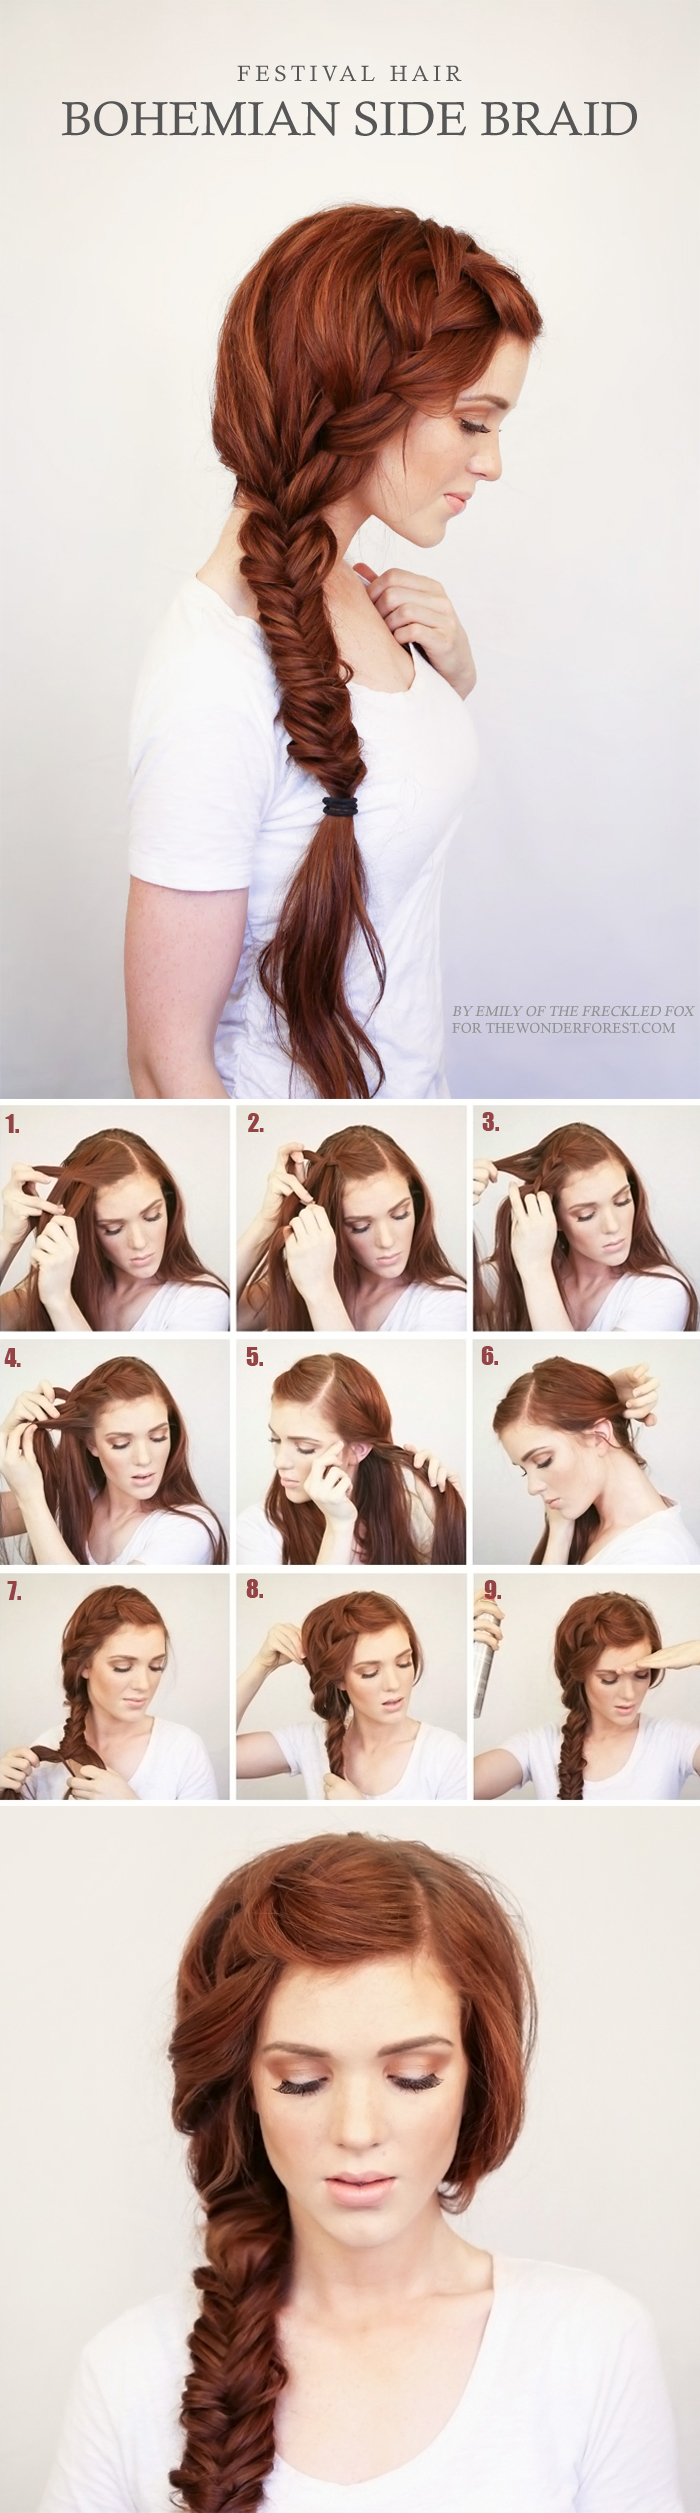 easy diy side braid boho bridal hairstyle idea